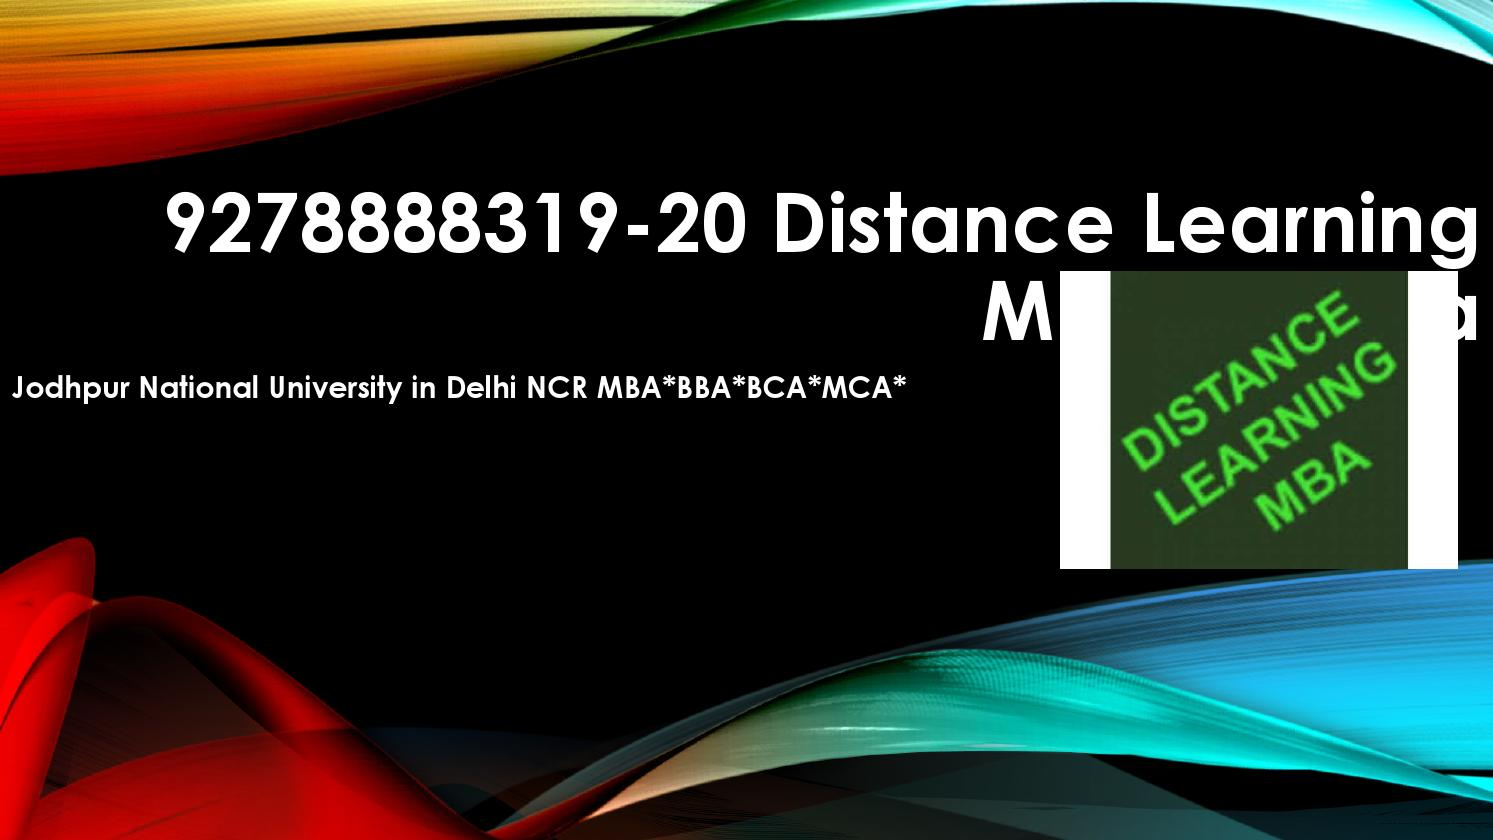 introduction to distance learning Introduction distance learning programs university of engineering & technology (uet) lahore is offering both traditional on-campus and distance learning (dl) courses in msc applied chemistry, msc applied physics and msc applied mathematics.